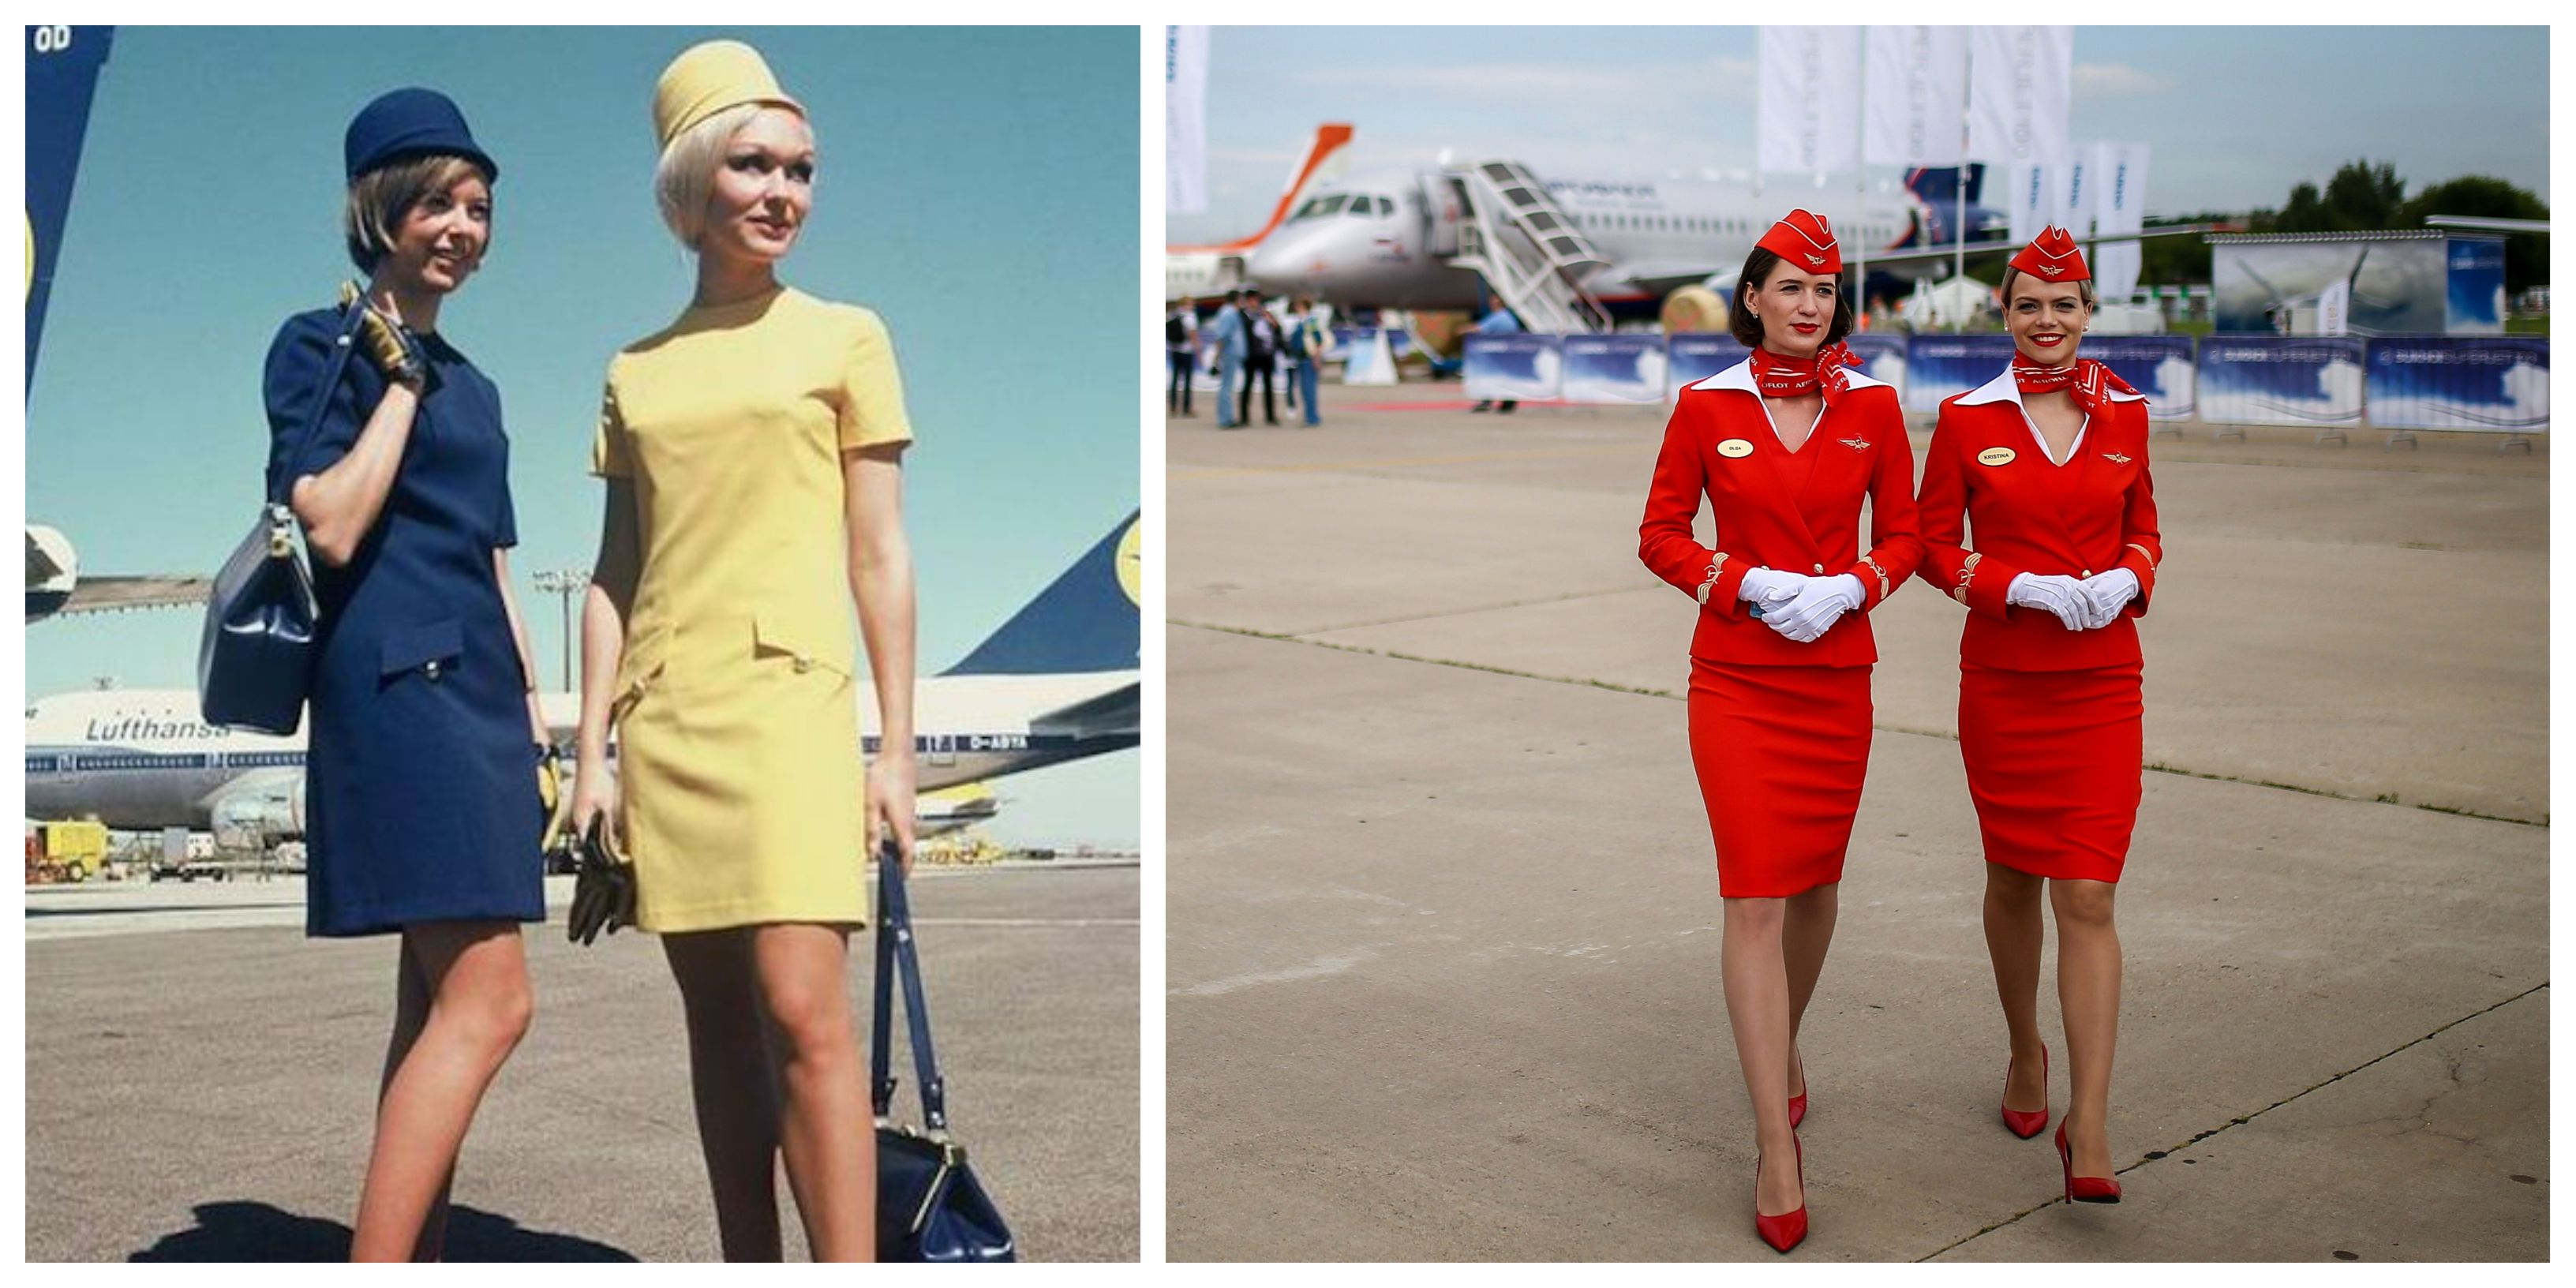 10 Vintage Airline Uniforms We Forgot About 10 Modern Uniforms We Love